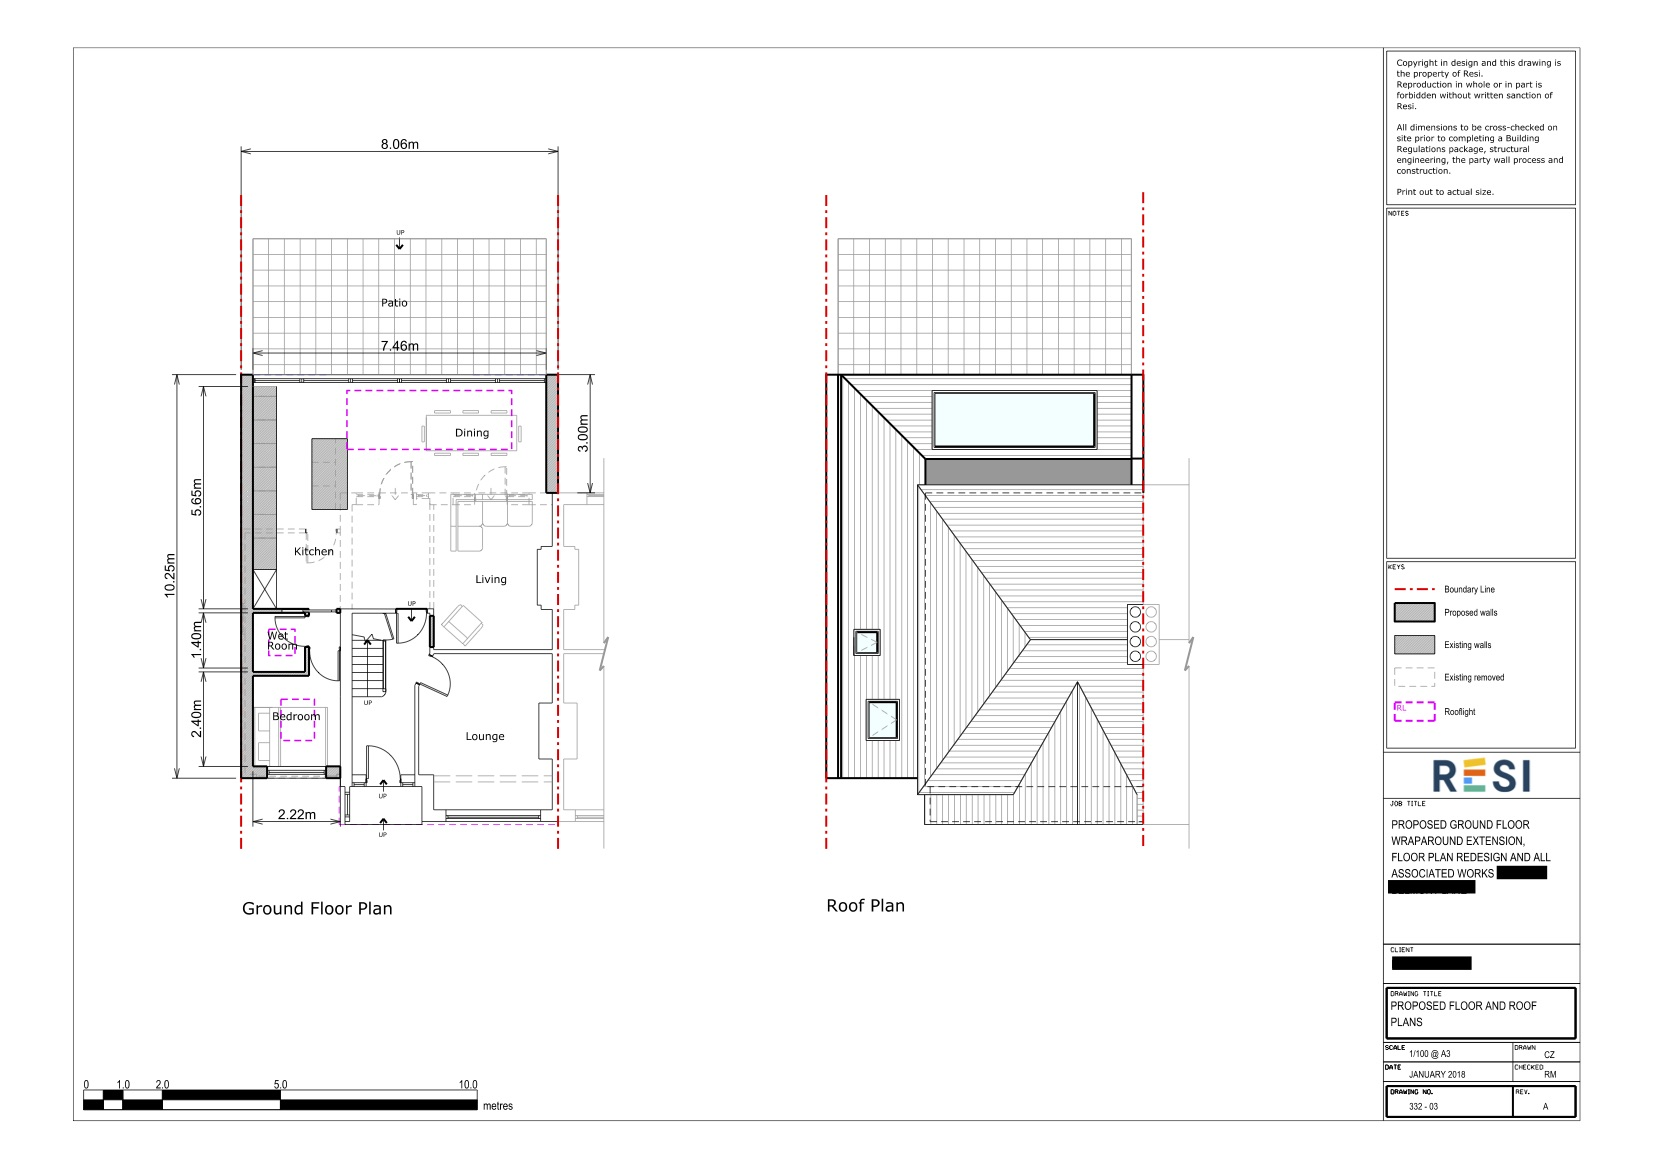 Architectural drawings 27   ground floor plans